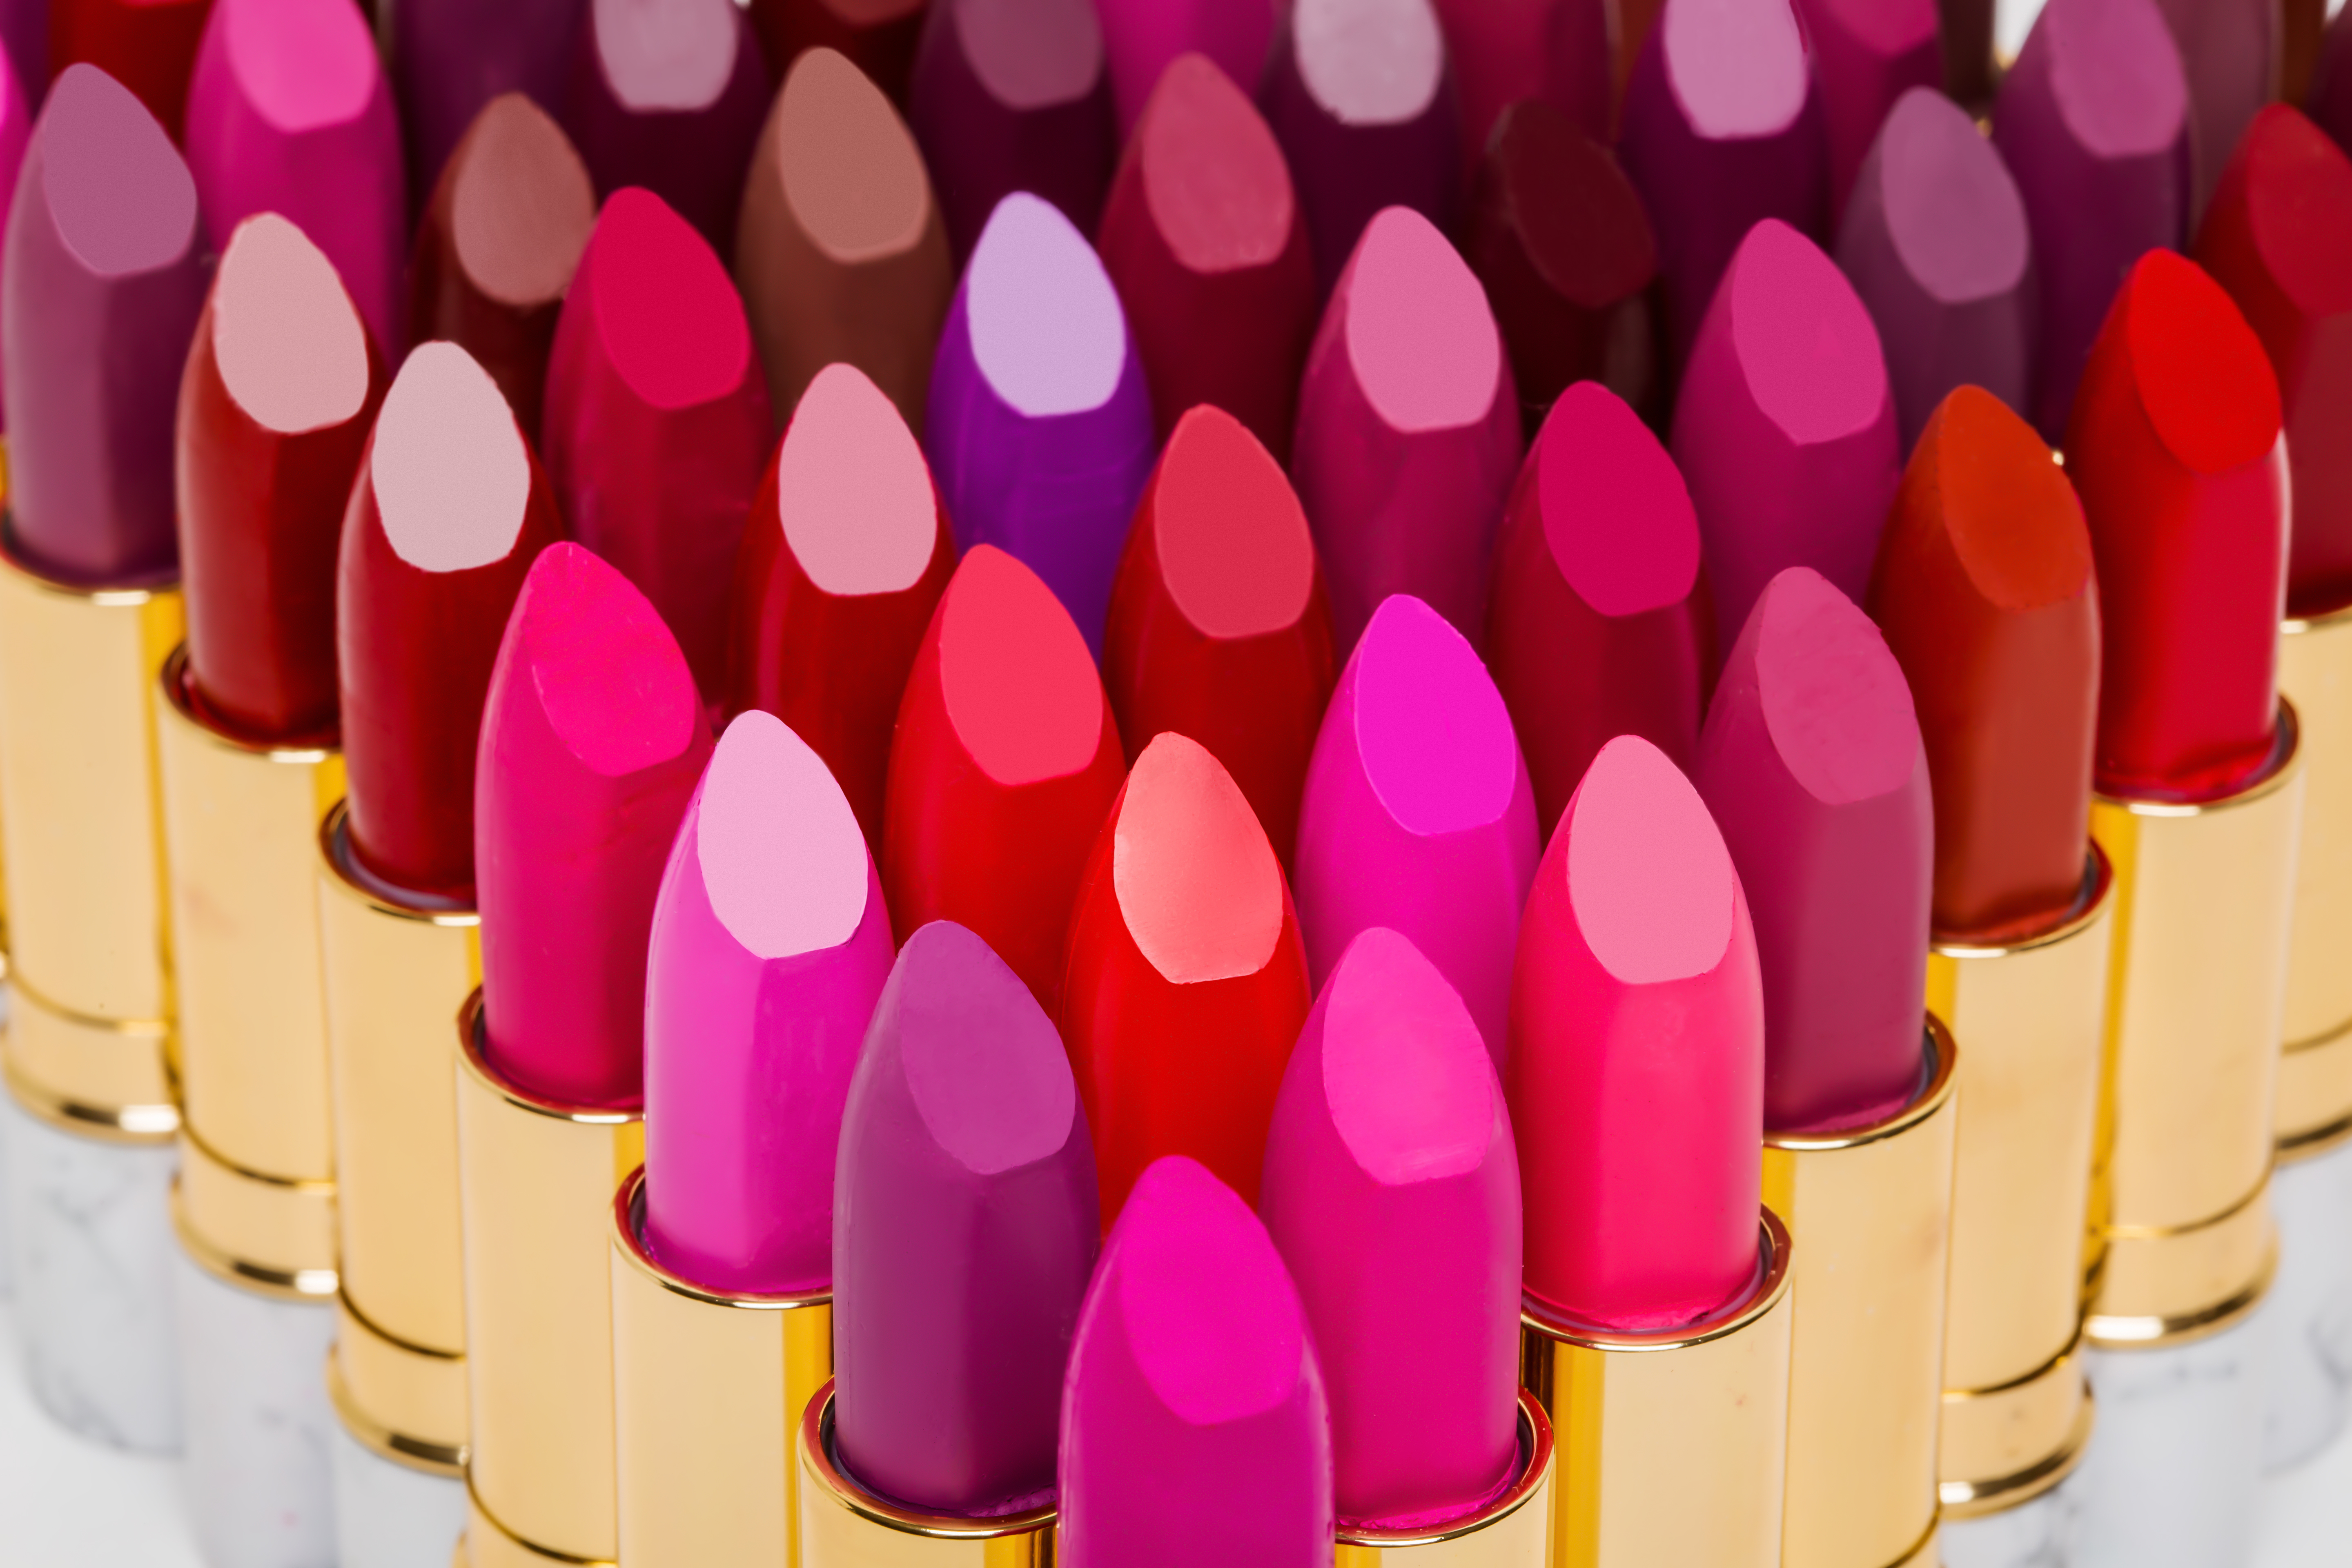 A Range Of Colorful Customized Lipsticks